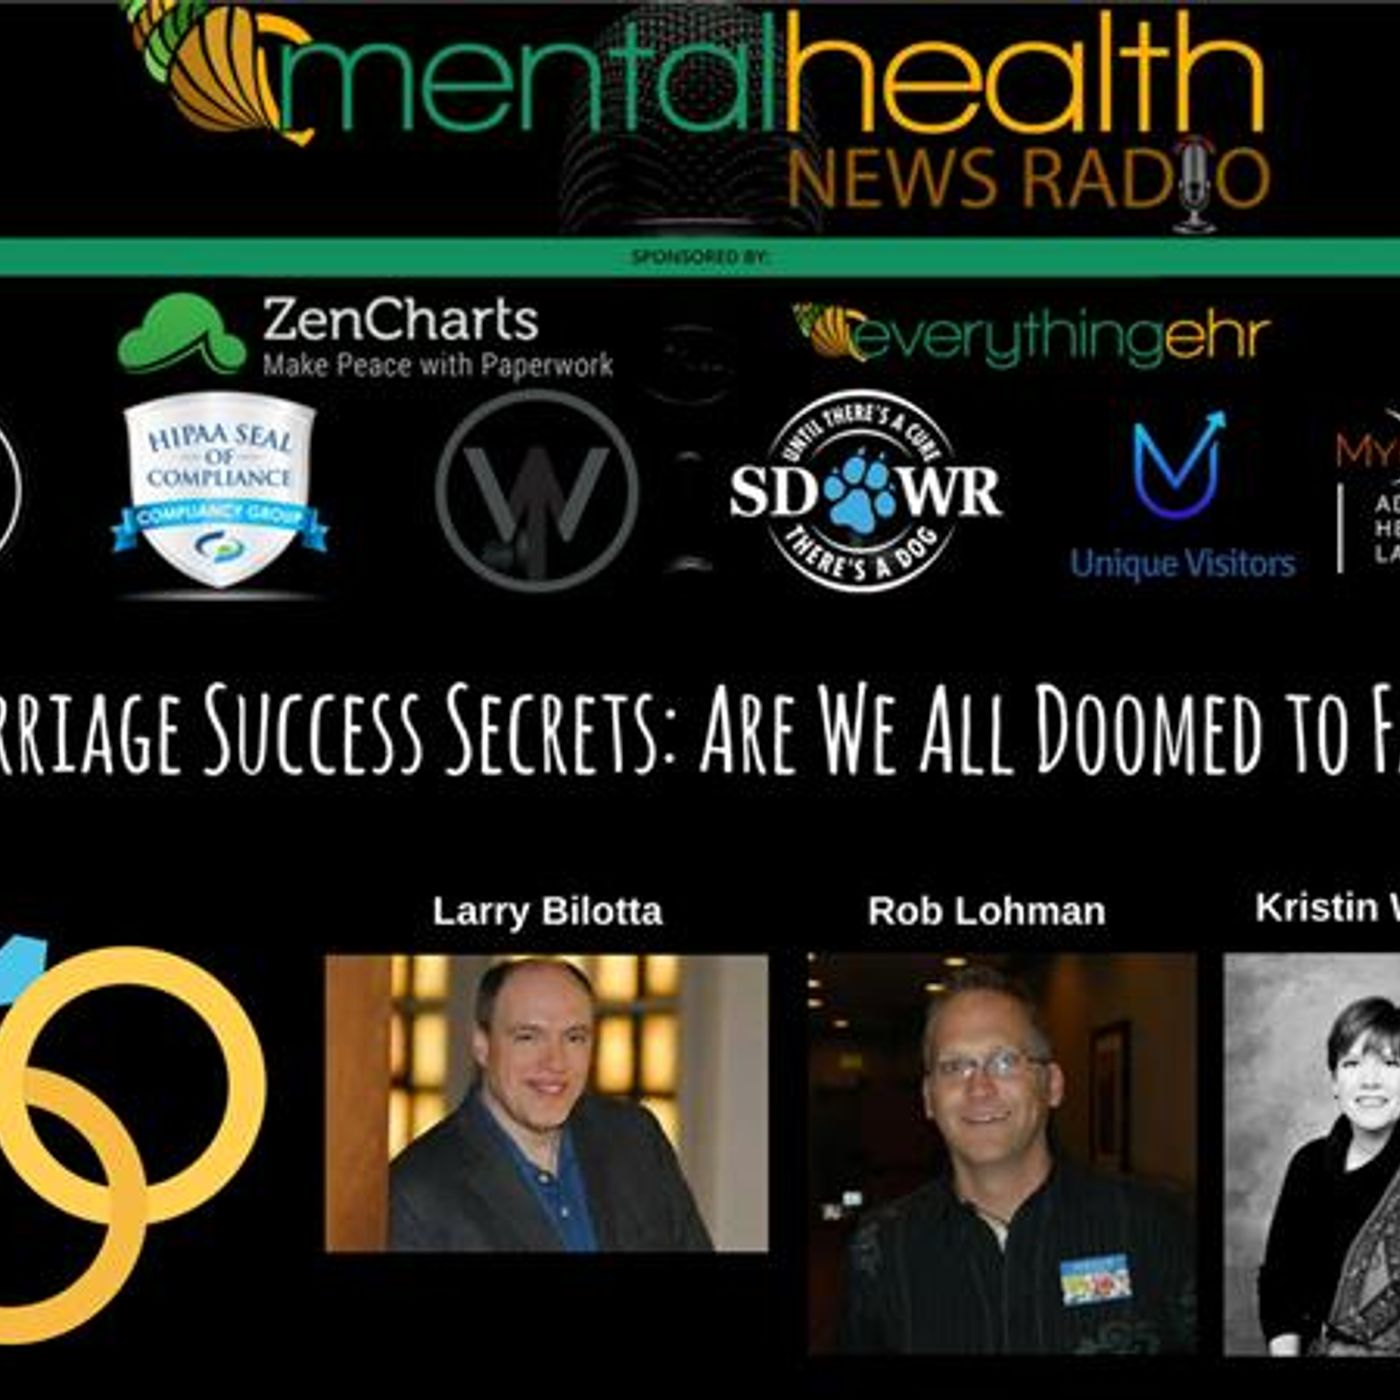 Mental Health News Radio - Marriage Success Secrets with Larry Bilotta: Are We All Doomed to Fail?